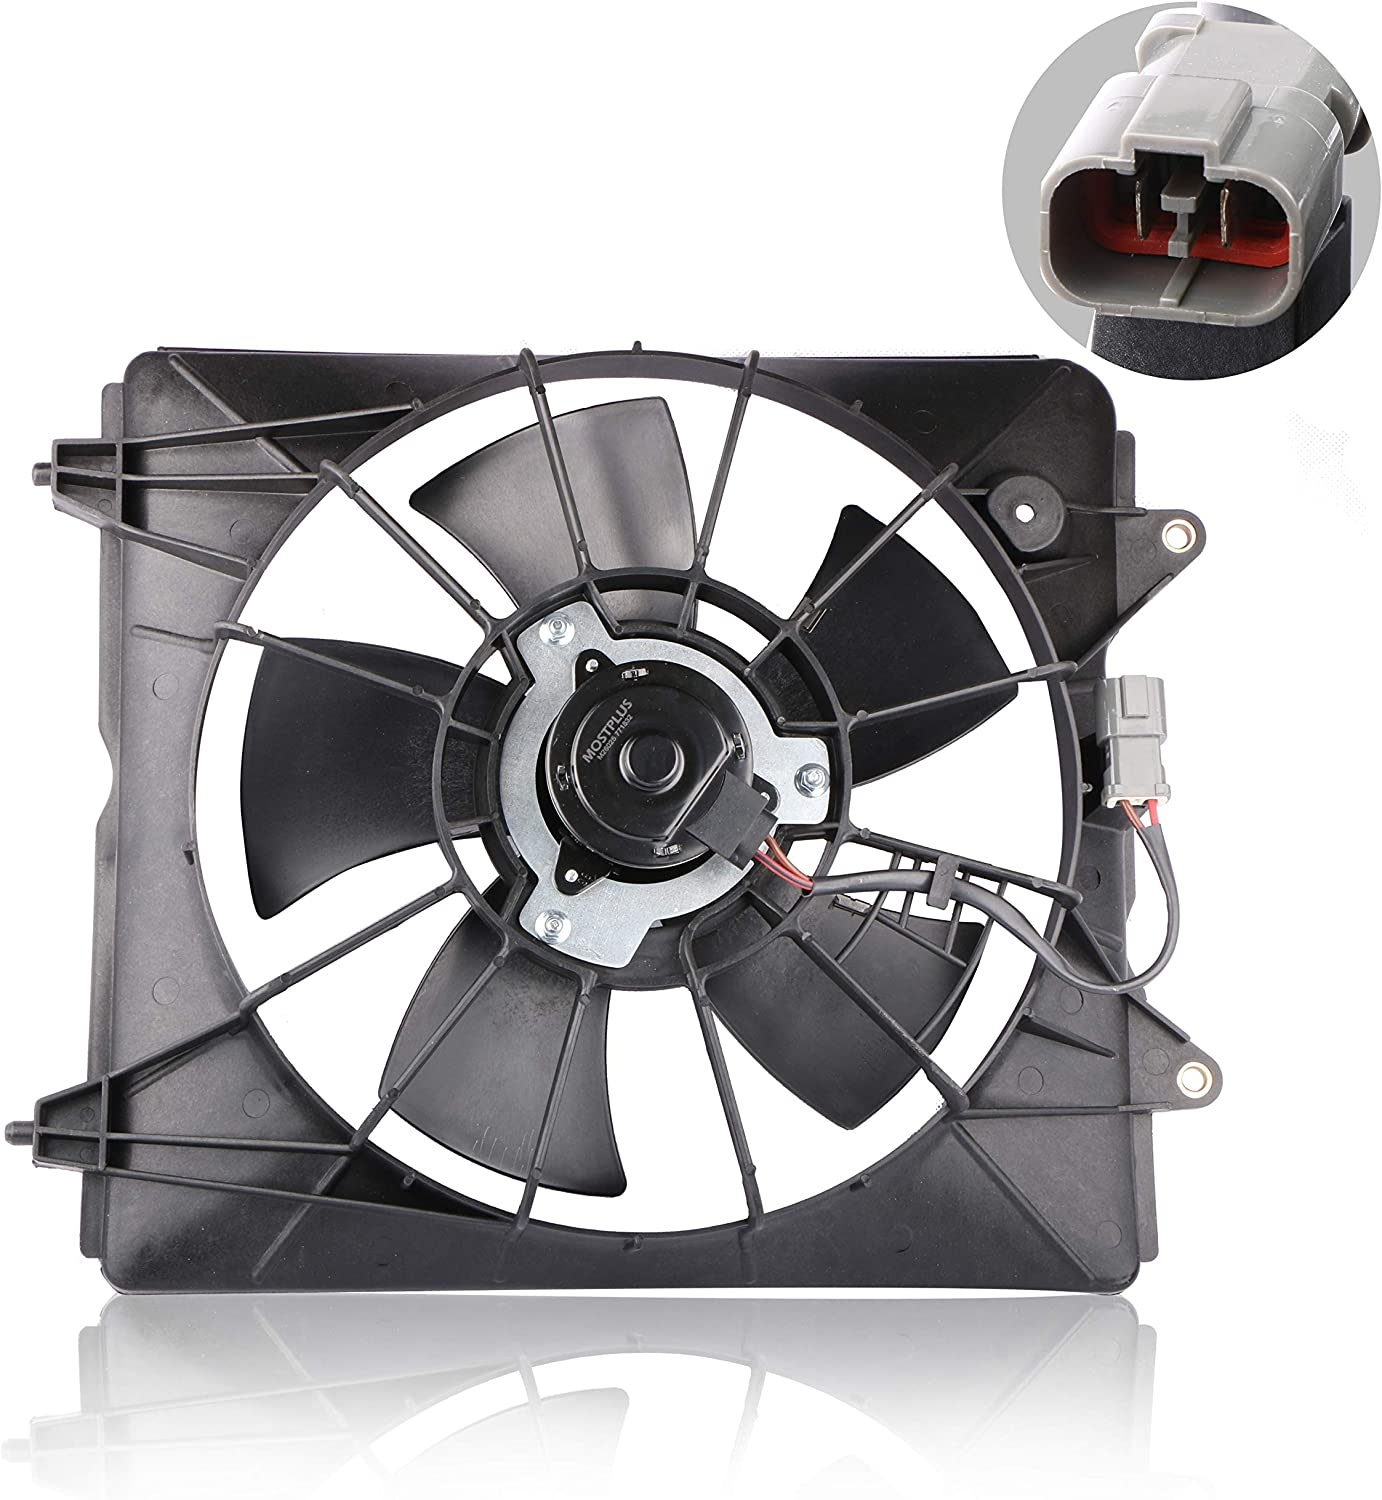 MOSTPLUS Driver Side Radiator Cooling Fan Assembly for 2007 2008 2009 Honda CRV 2.4L Replaces 19015RZAA01